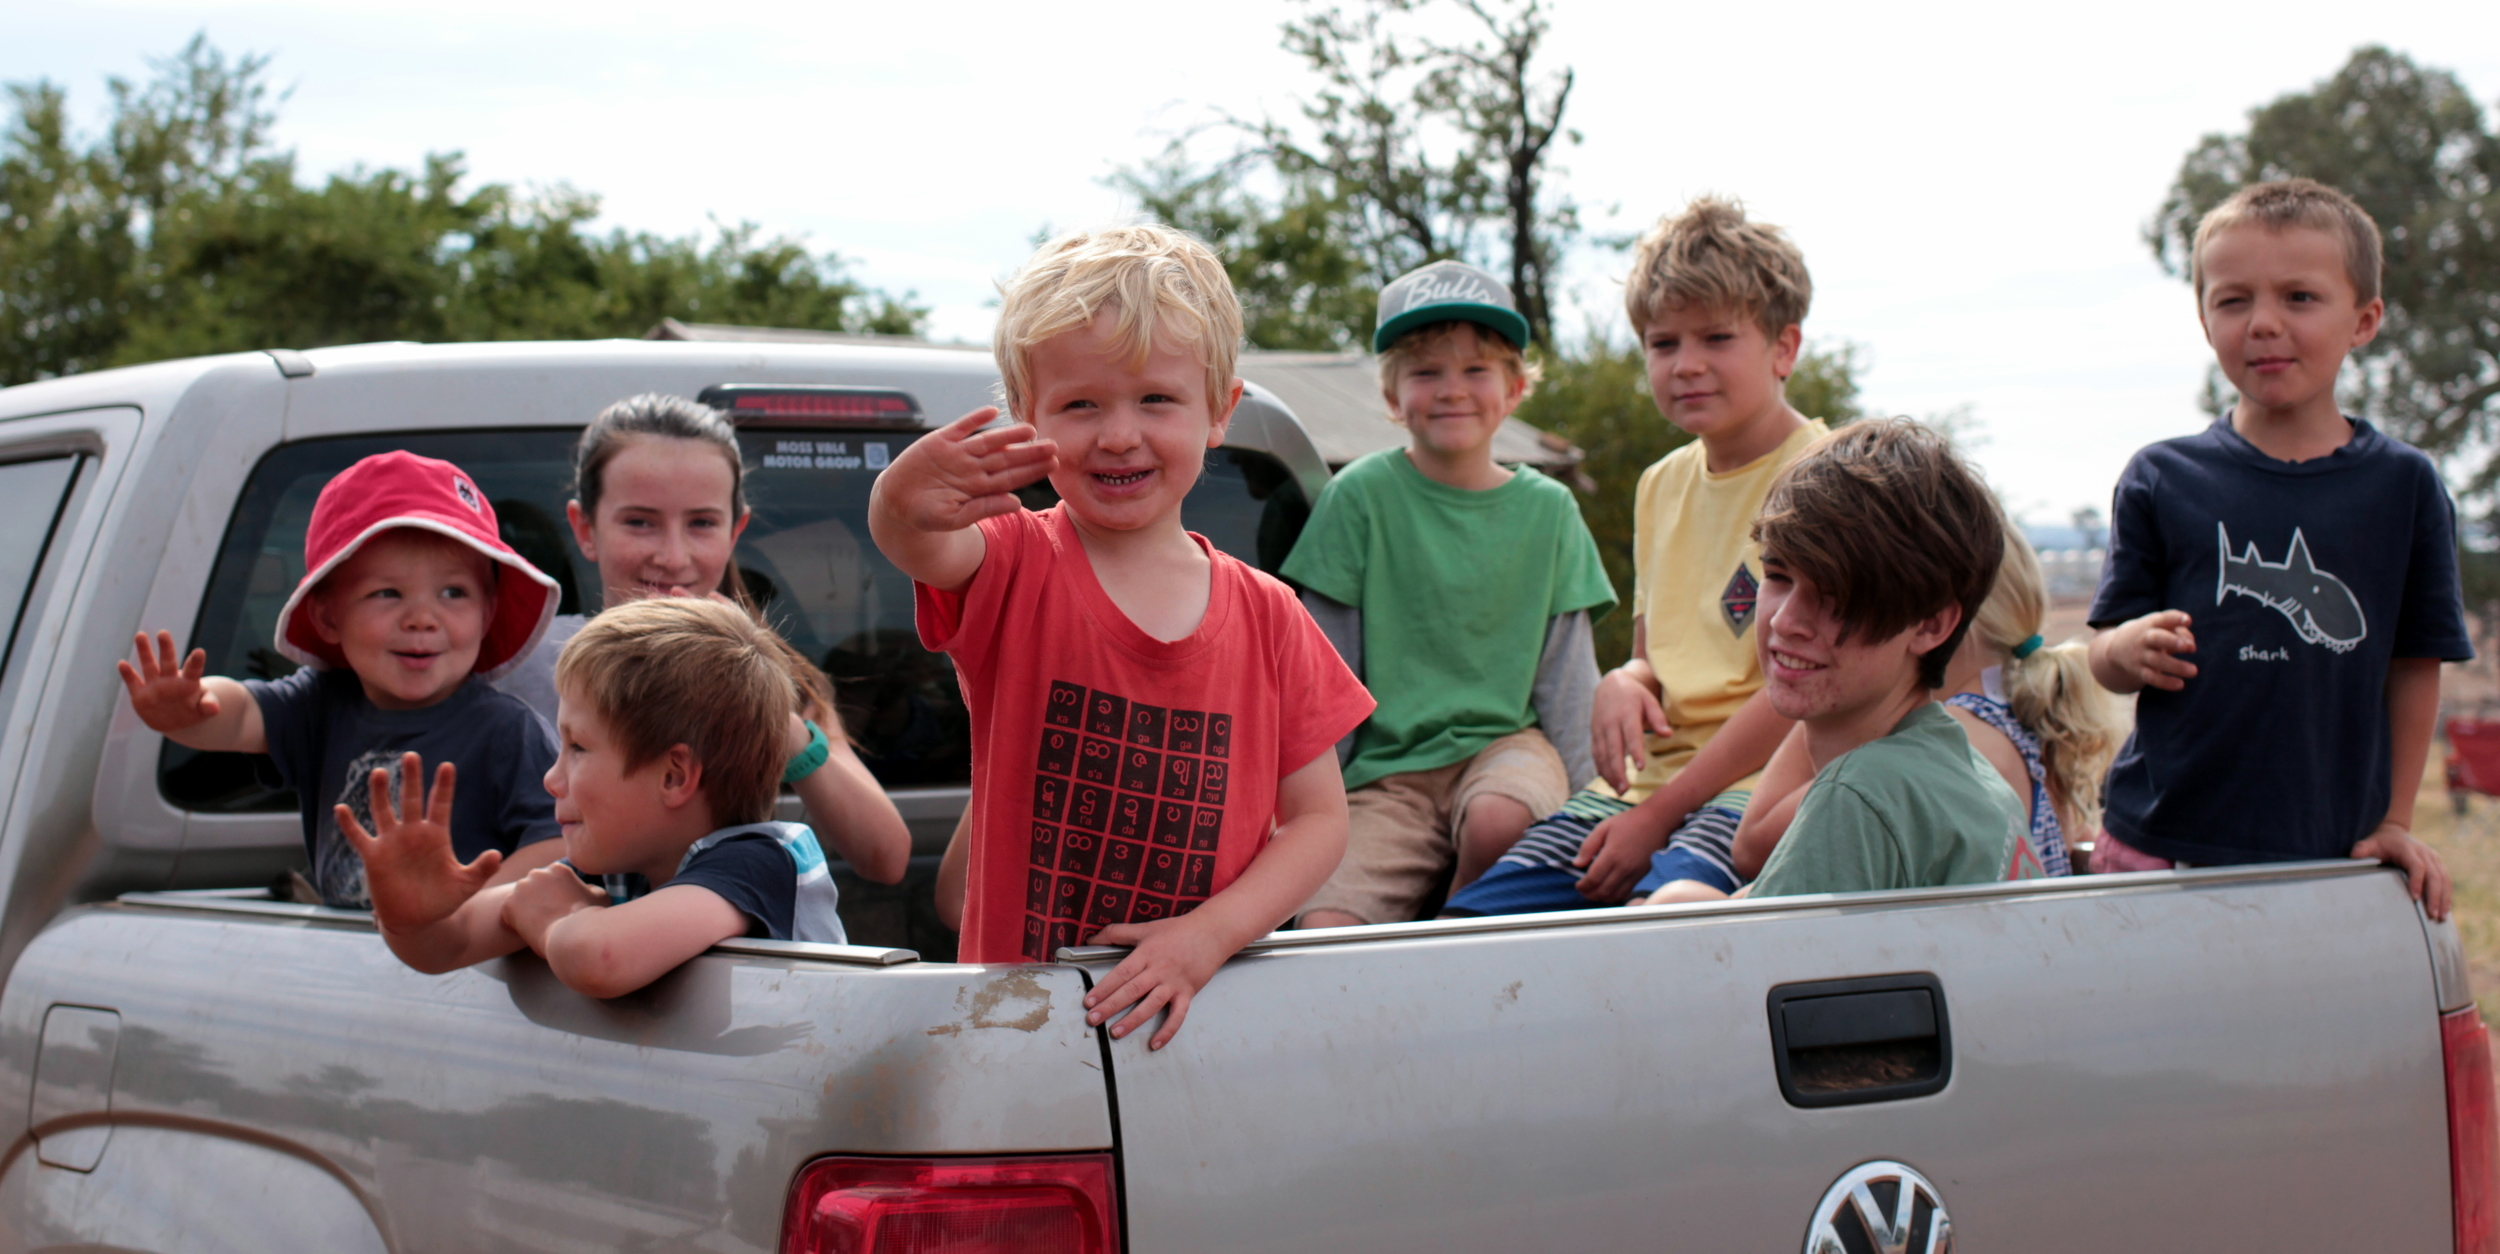 How many kids can you fit in the back of a ute?